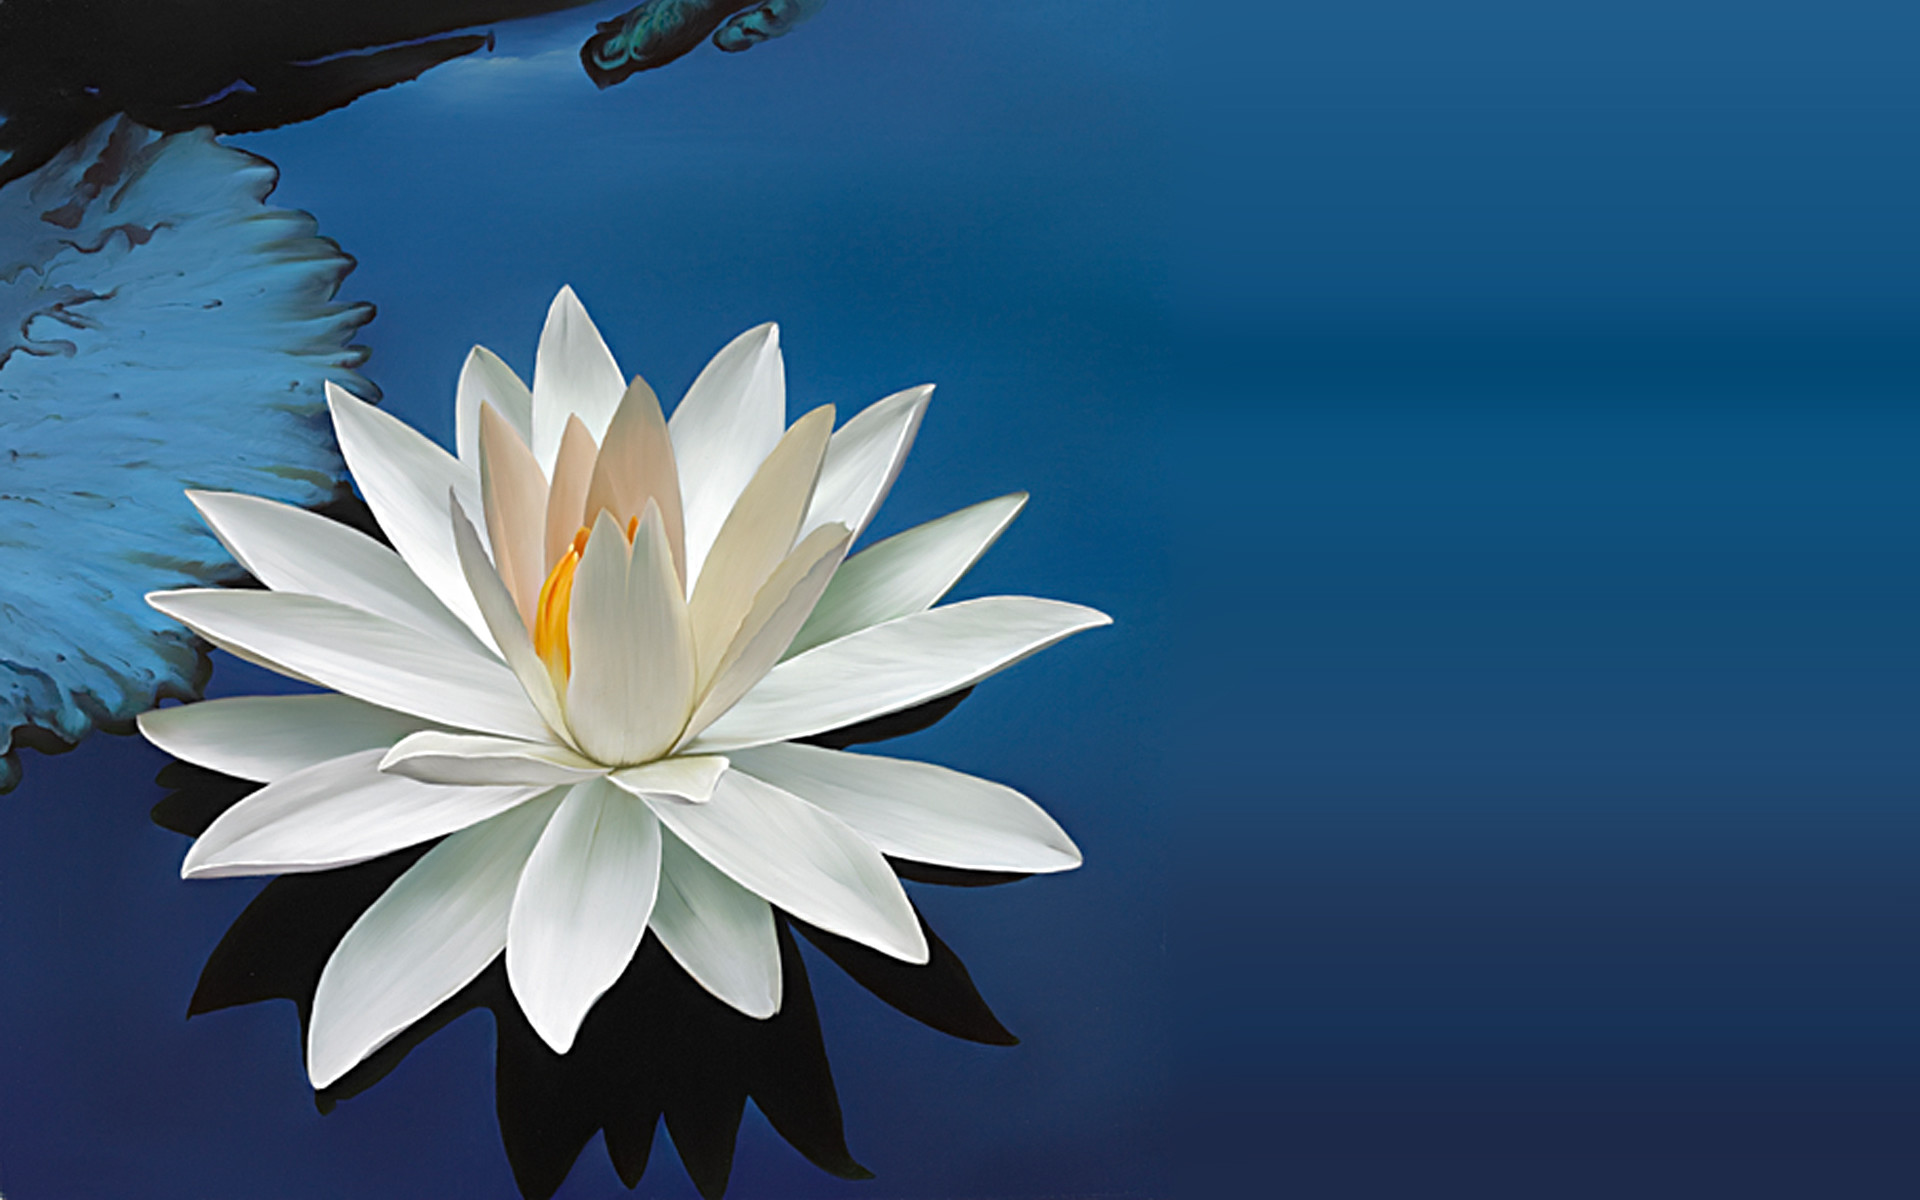 Lotus flower background wallpaper 65 images 1920x1200 lotus flowers wallpapers hd pictures mightylinksfo